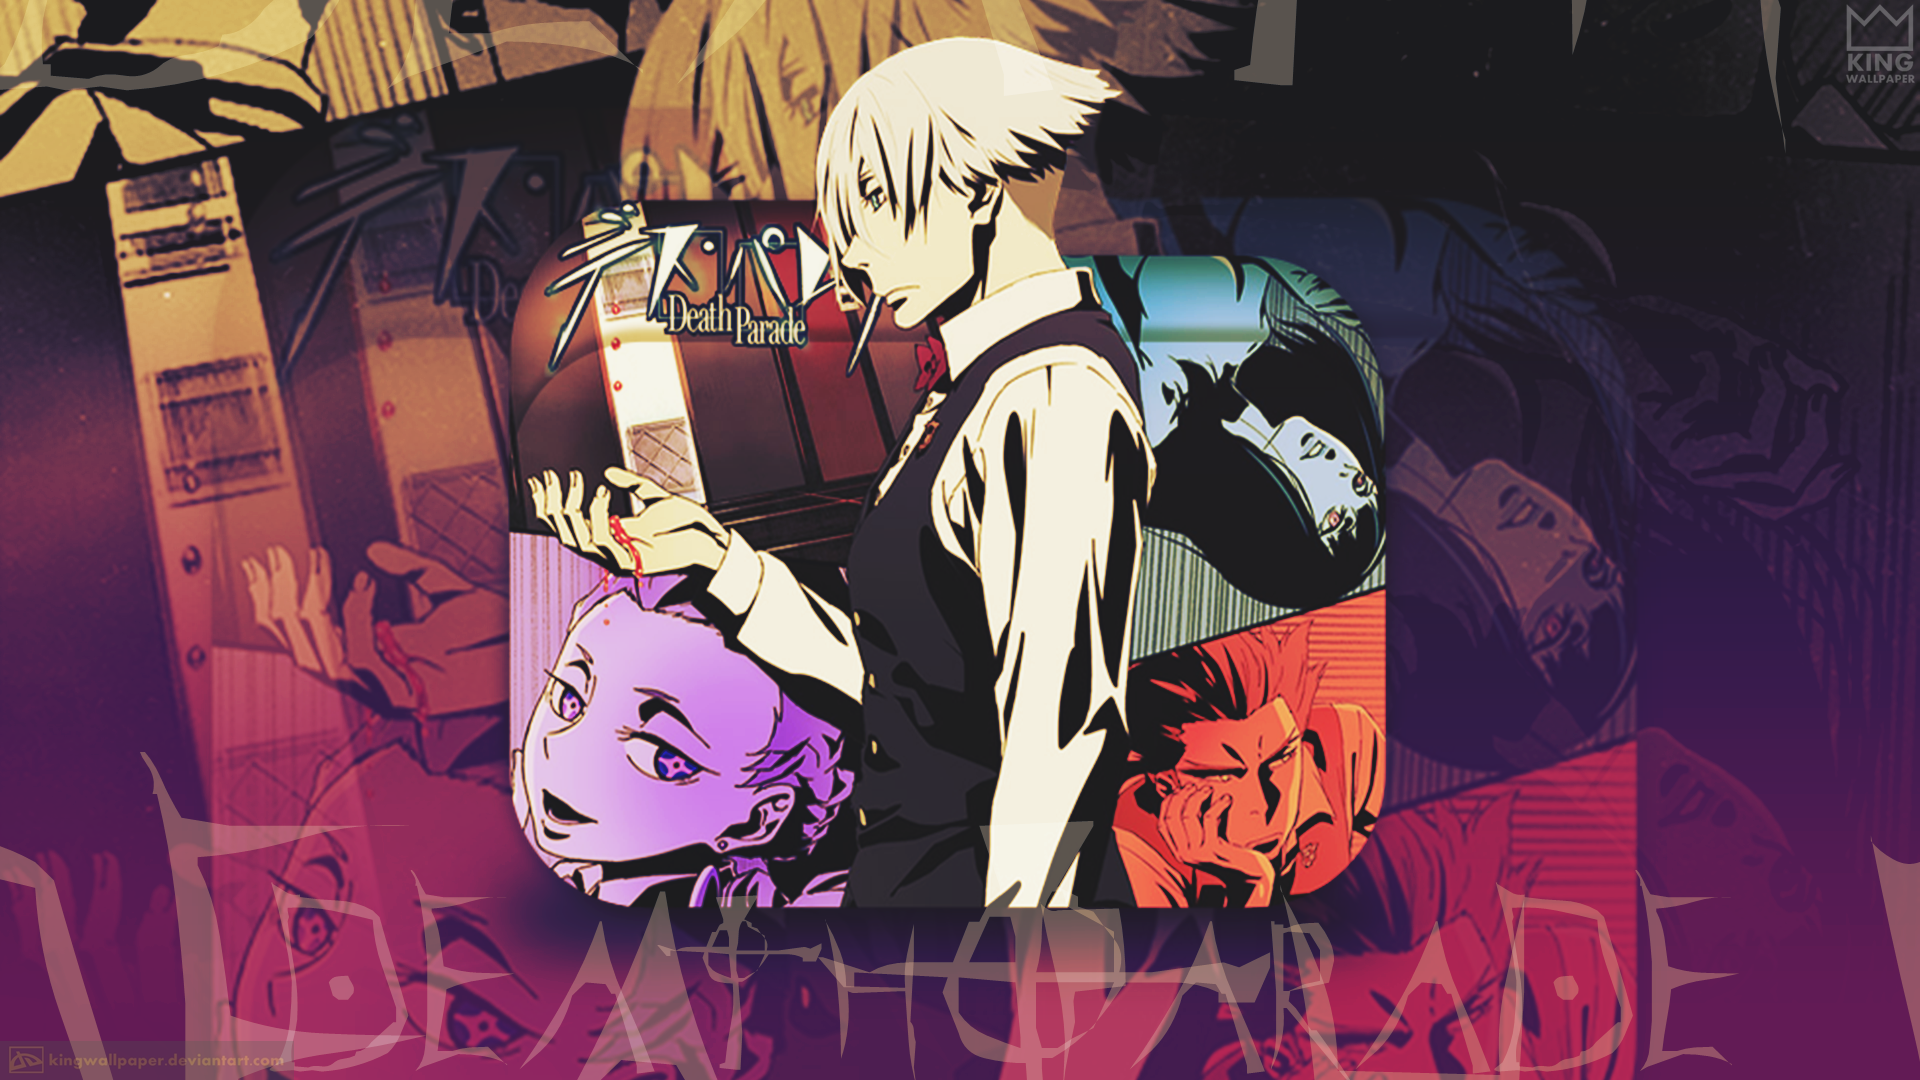 death_parade_wallpaper____kingwallpaper_by_kingwallpaper-d8g34pn